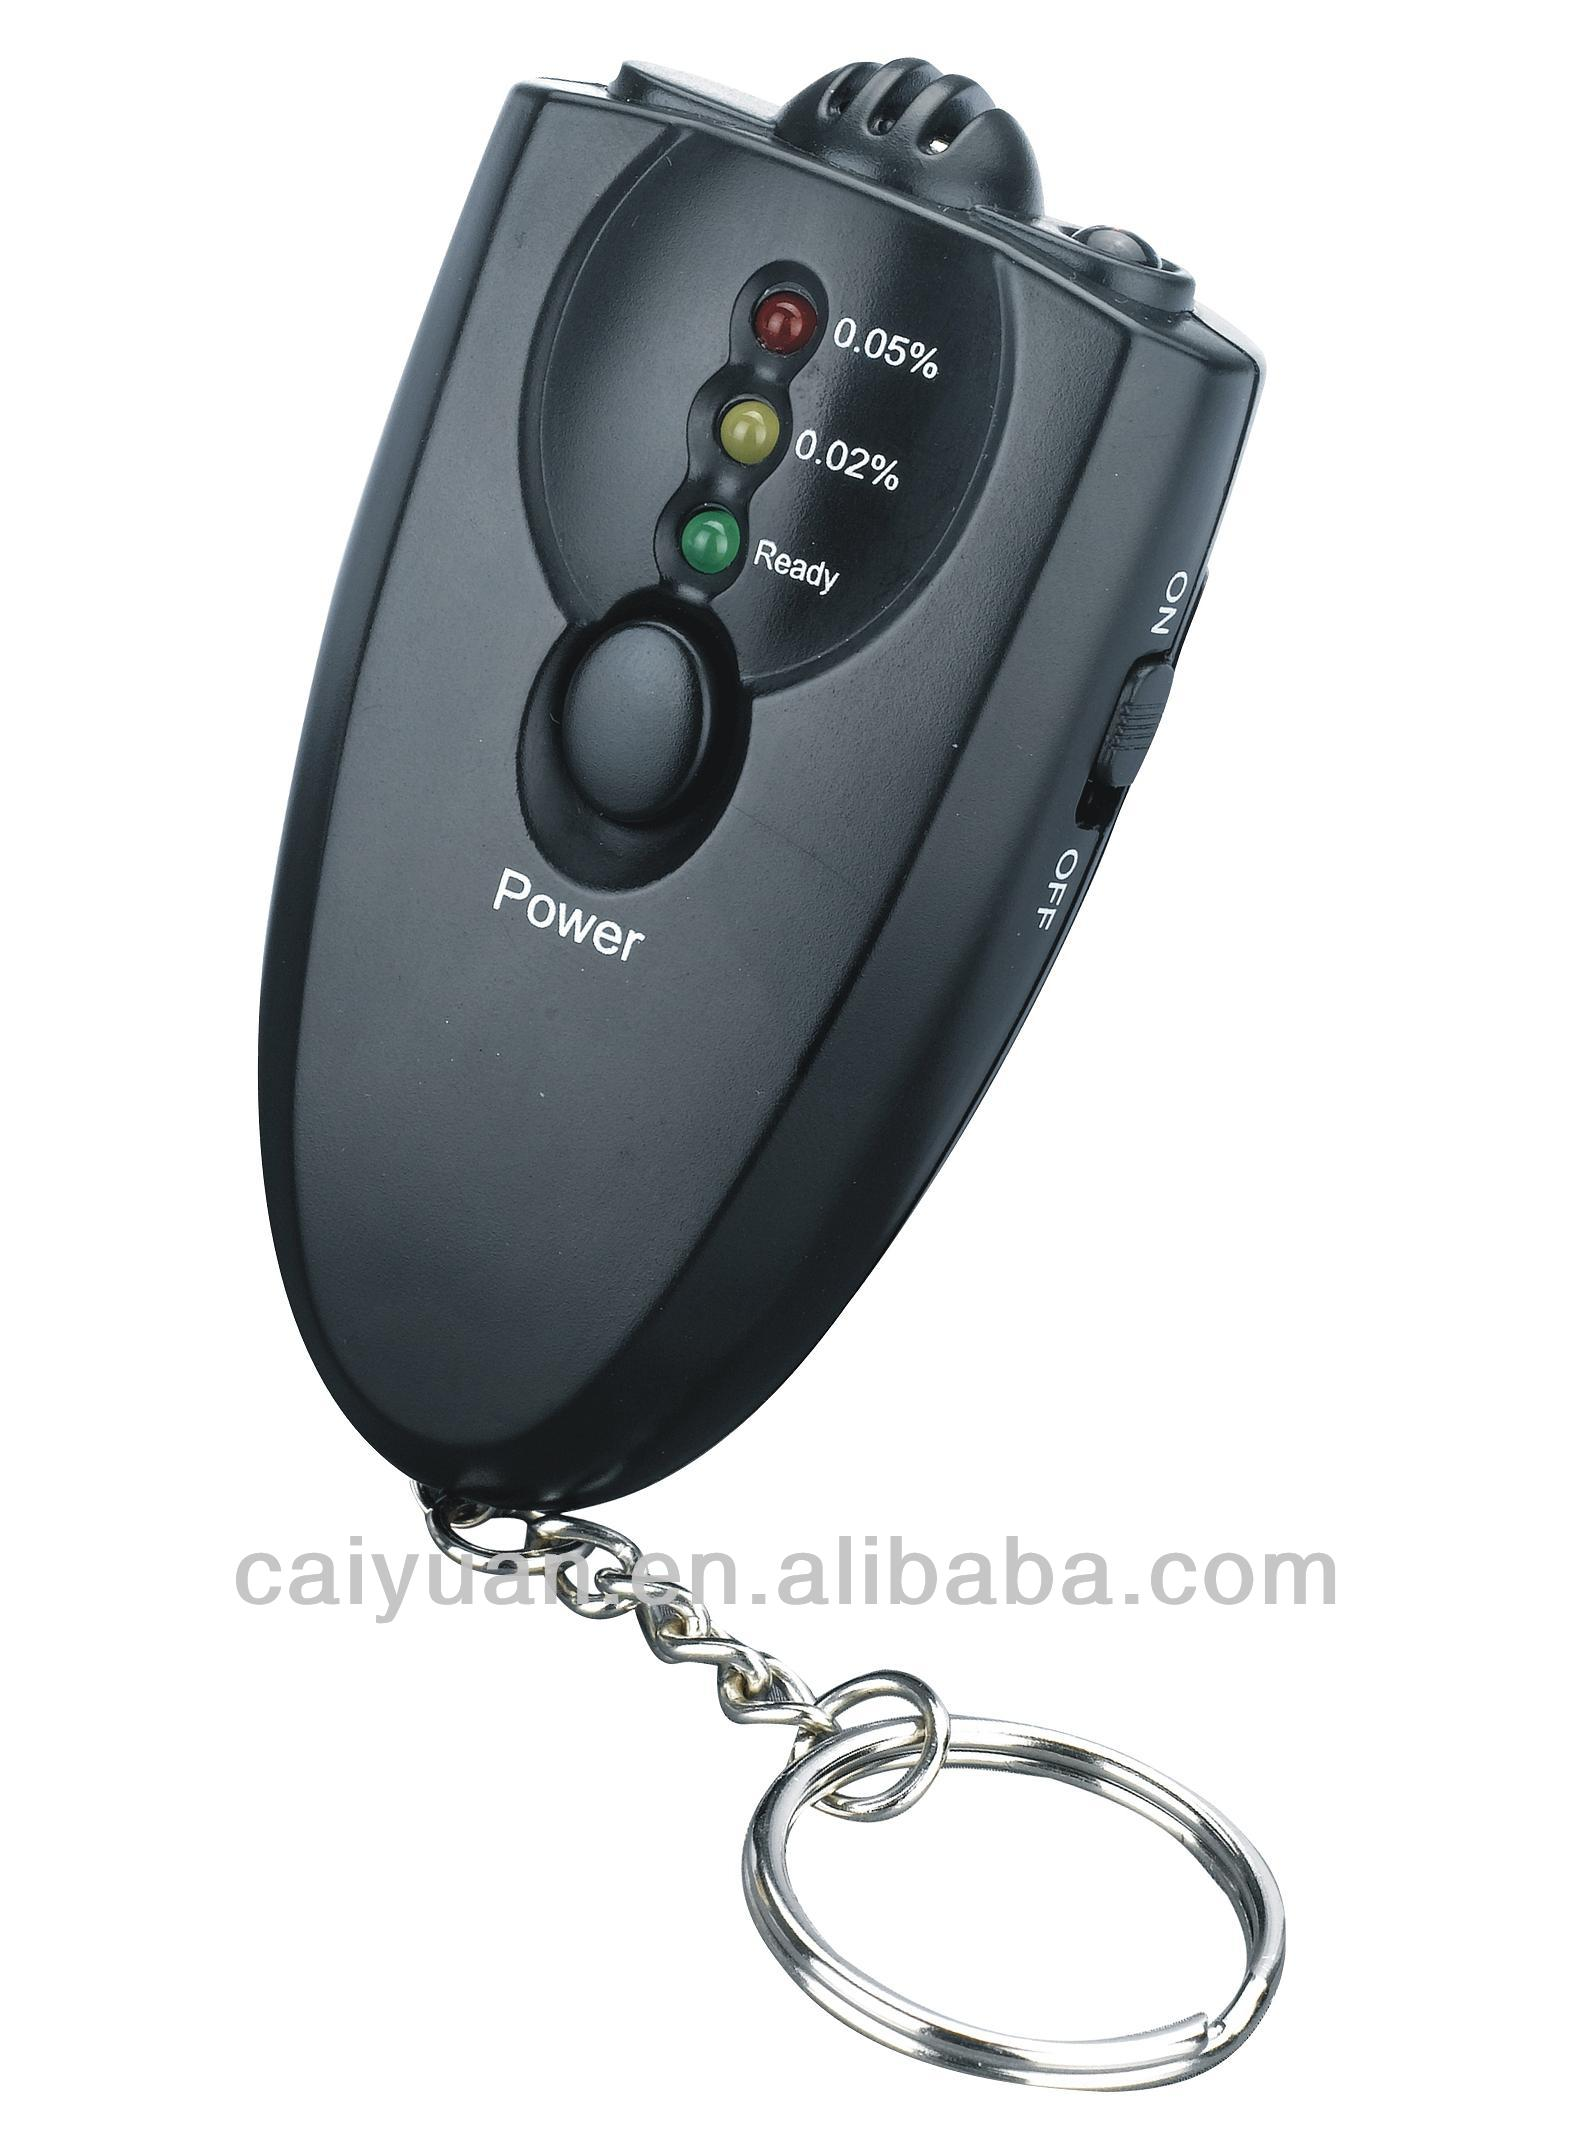 Keychain alcohol breath tester with printer